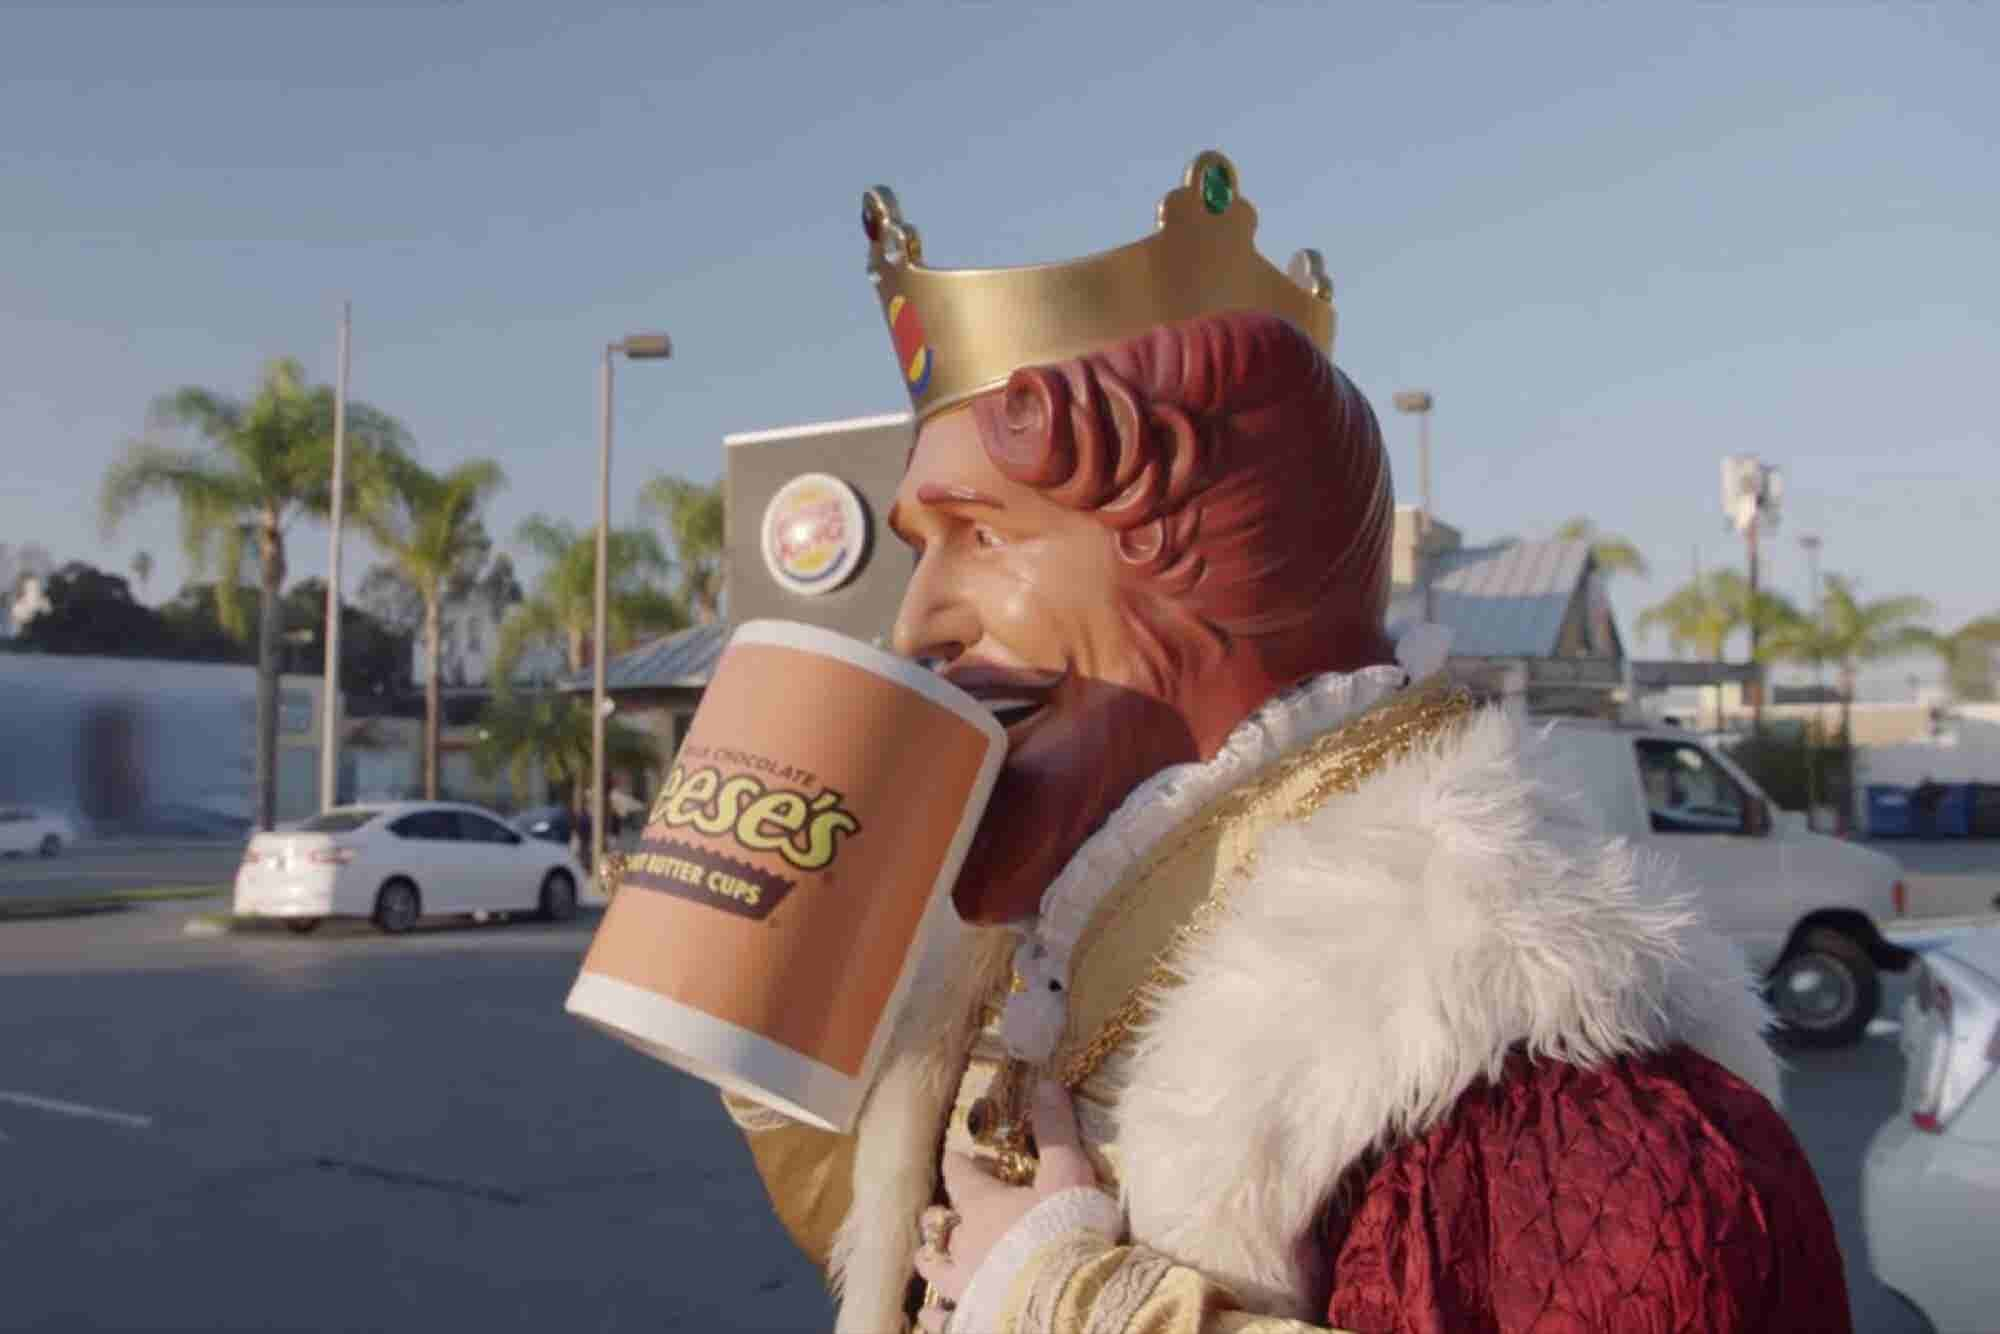 You Want Fries With That? Burger King Explains Net Neutrality In Less Than 3 Minutes.